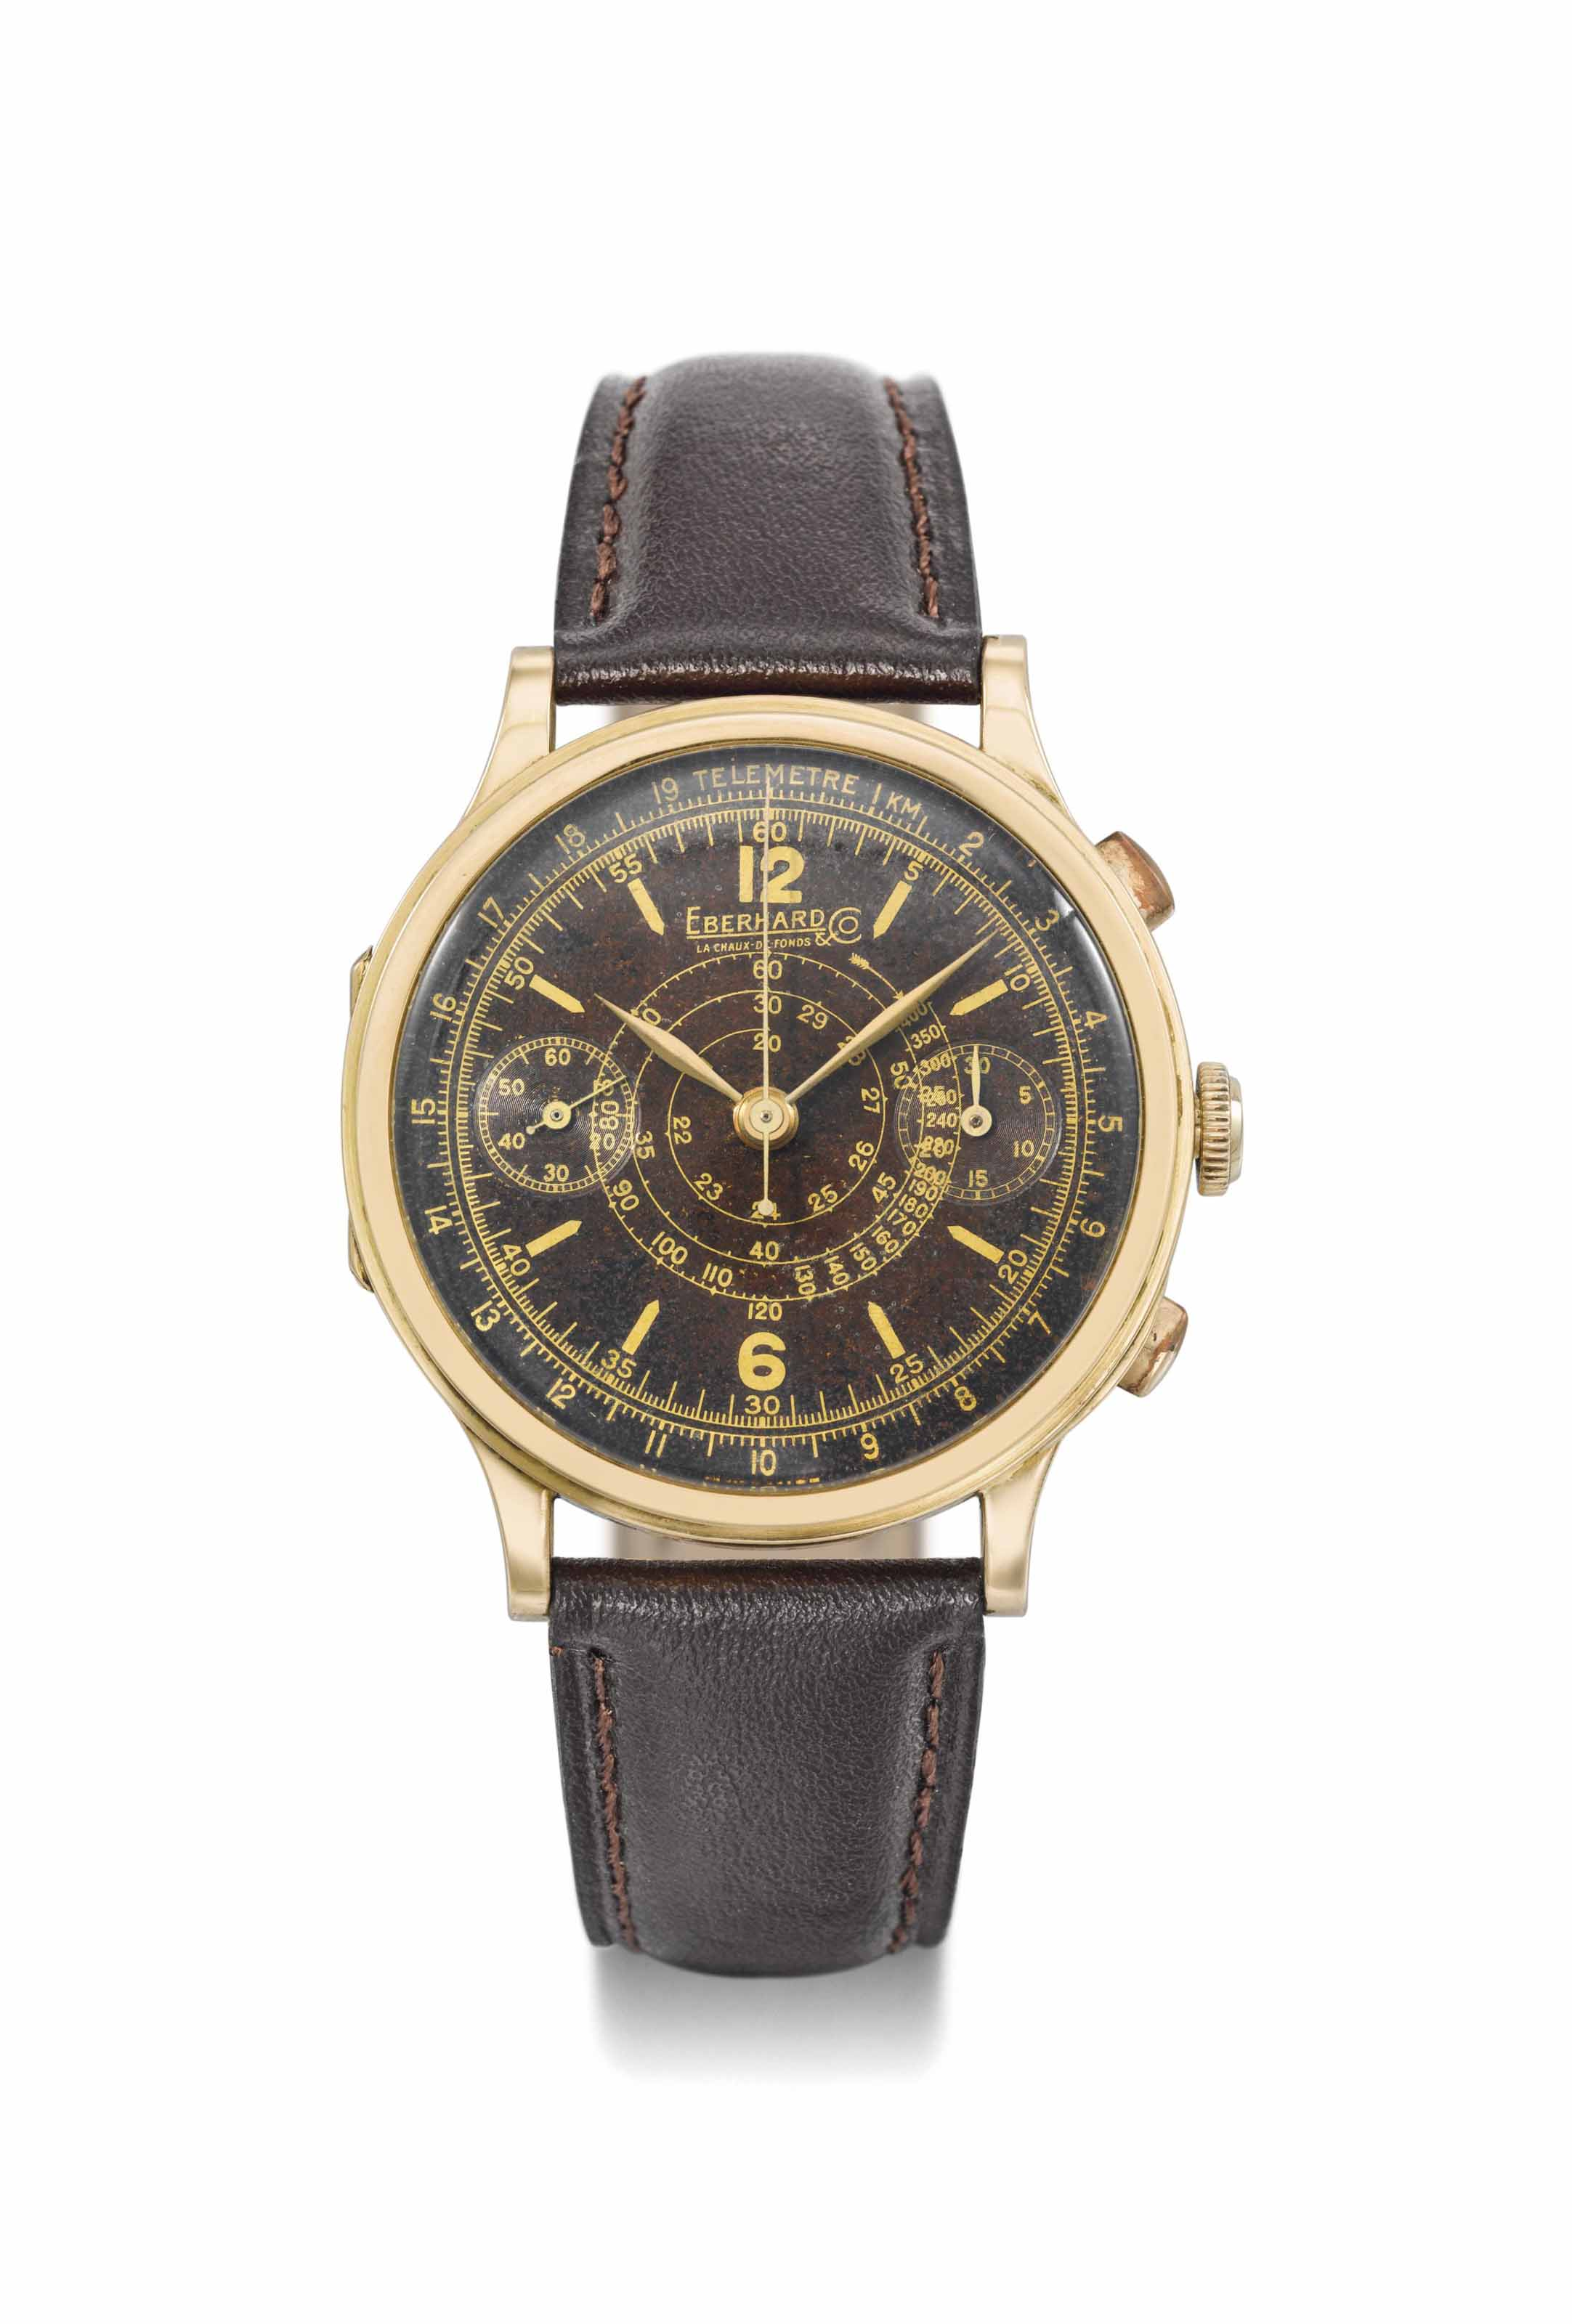 Eberhard & Co. A large, very attractive and rare 18K gold hinged single button chronograph wristwatch with stop function and tropical brown dial